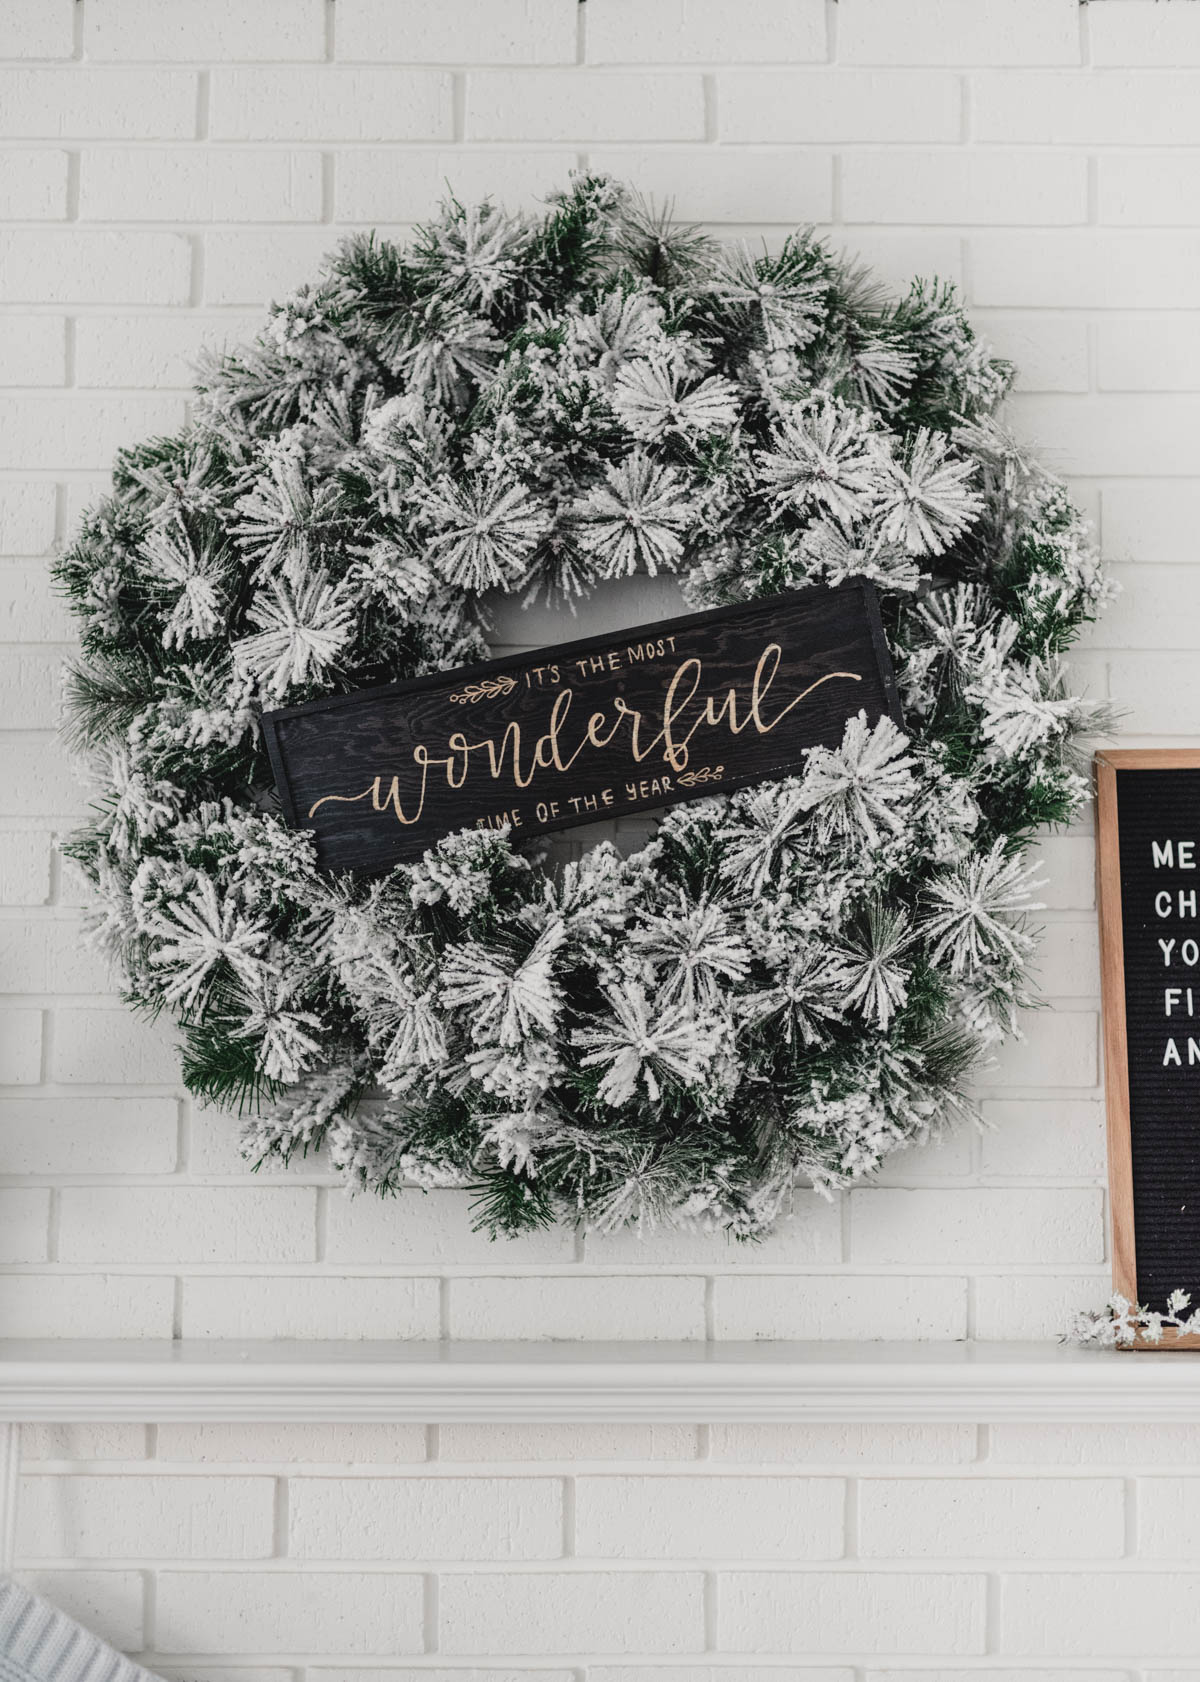 Love the wooden sign in the wreath on the mantel!